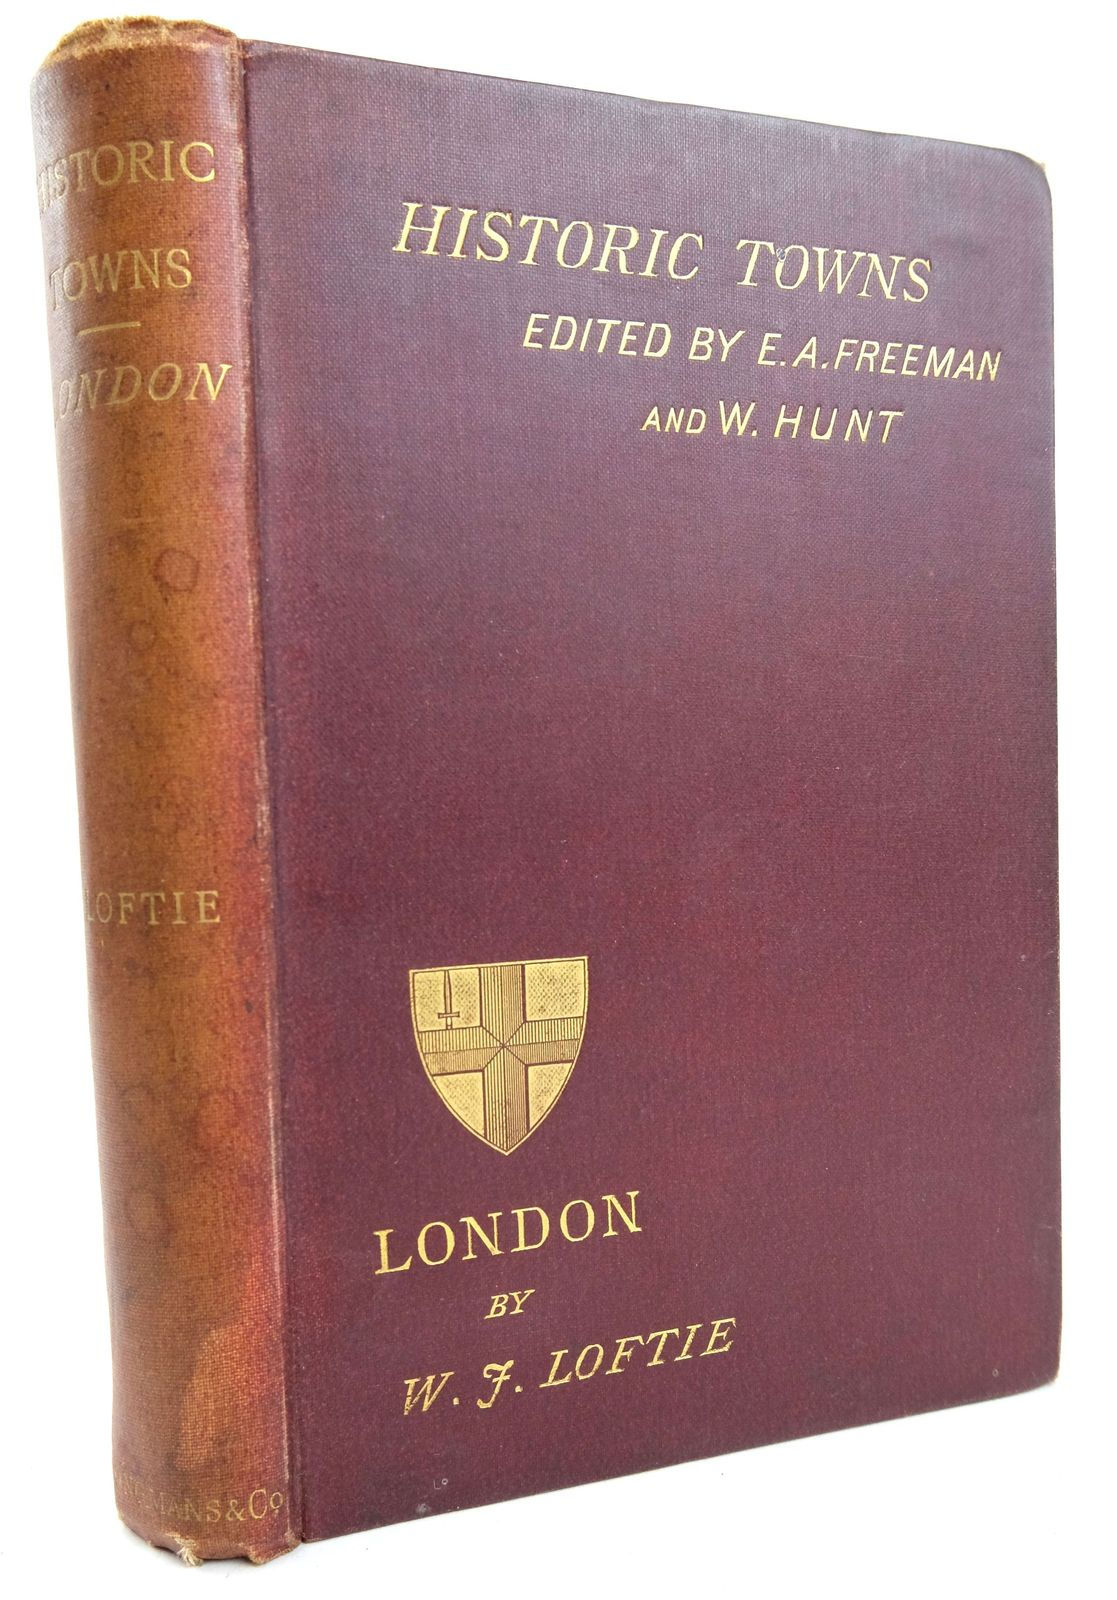 Photo of LONDON (HISTORIC TOWNS) written by Loftie, W.J. published by Longmans, Green & Co. (STOCK CODE: 1819530)  for sale by Stella & Rose's Books